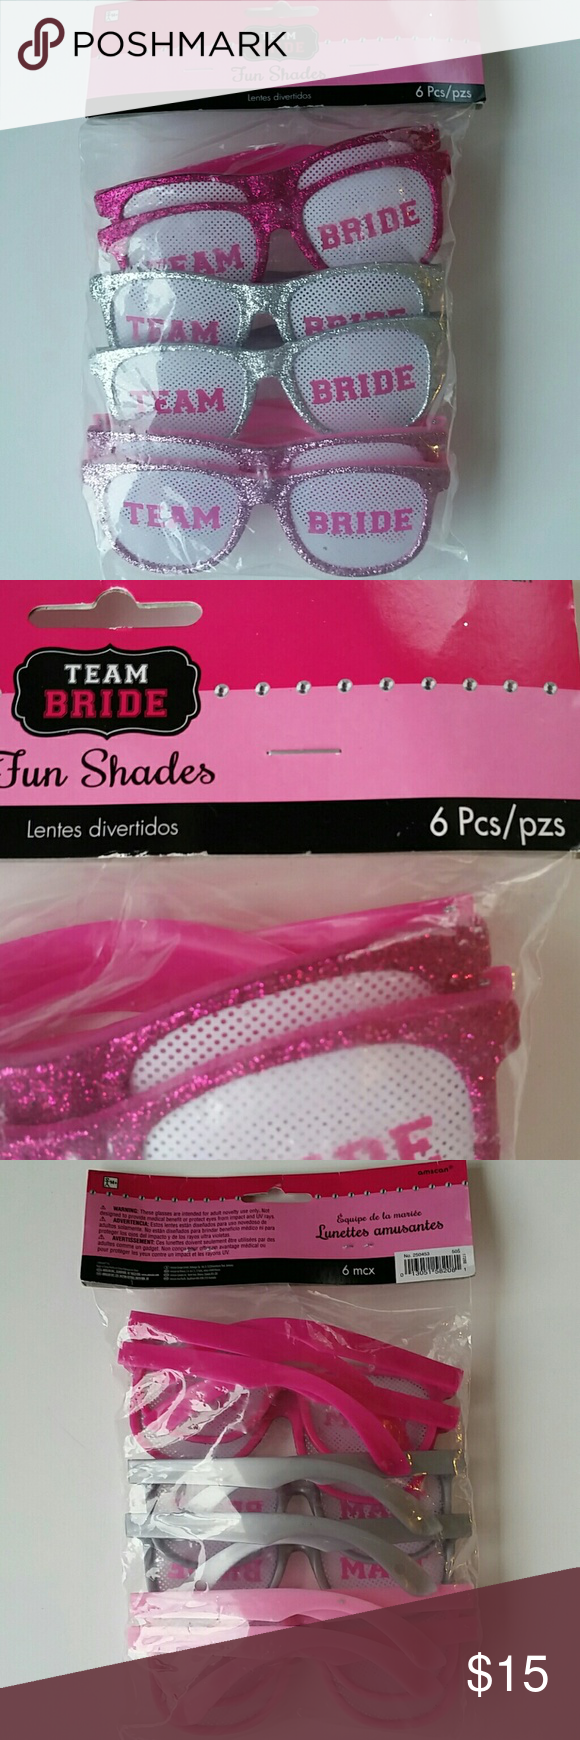 4bcc3bc303c2 Team Bride Fun Shades Glasses Brand new in original packaging. Pack of 6  shades. Super fun and perfect for a bridal shower. Smoke and pet free house.